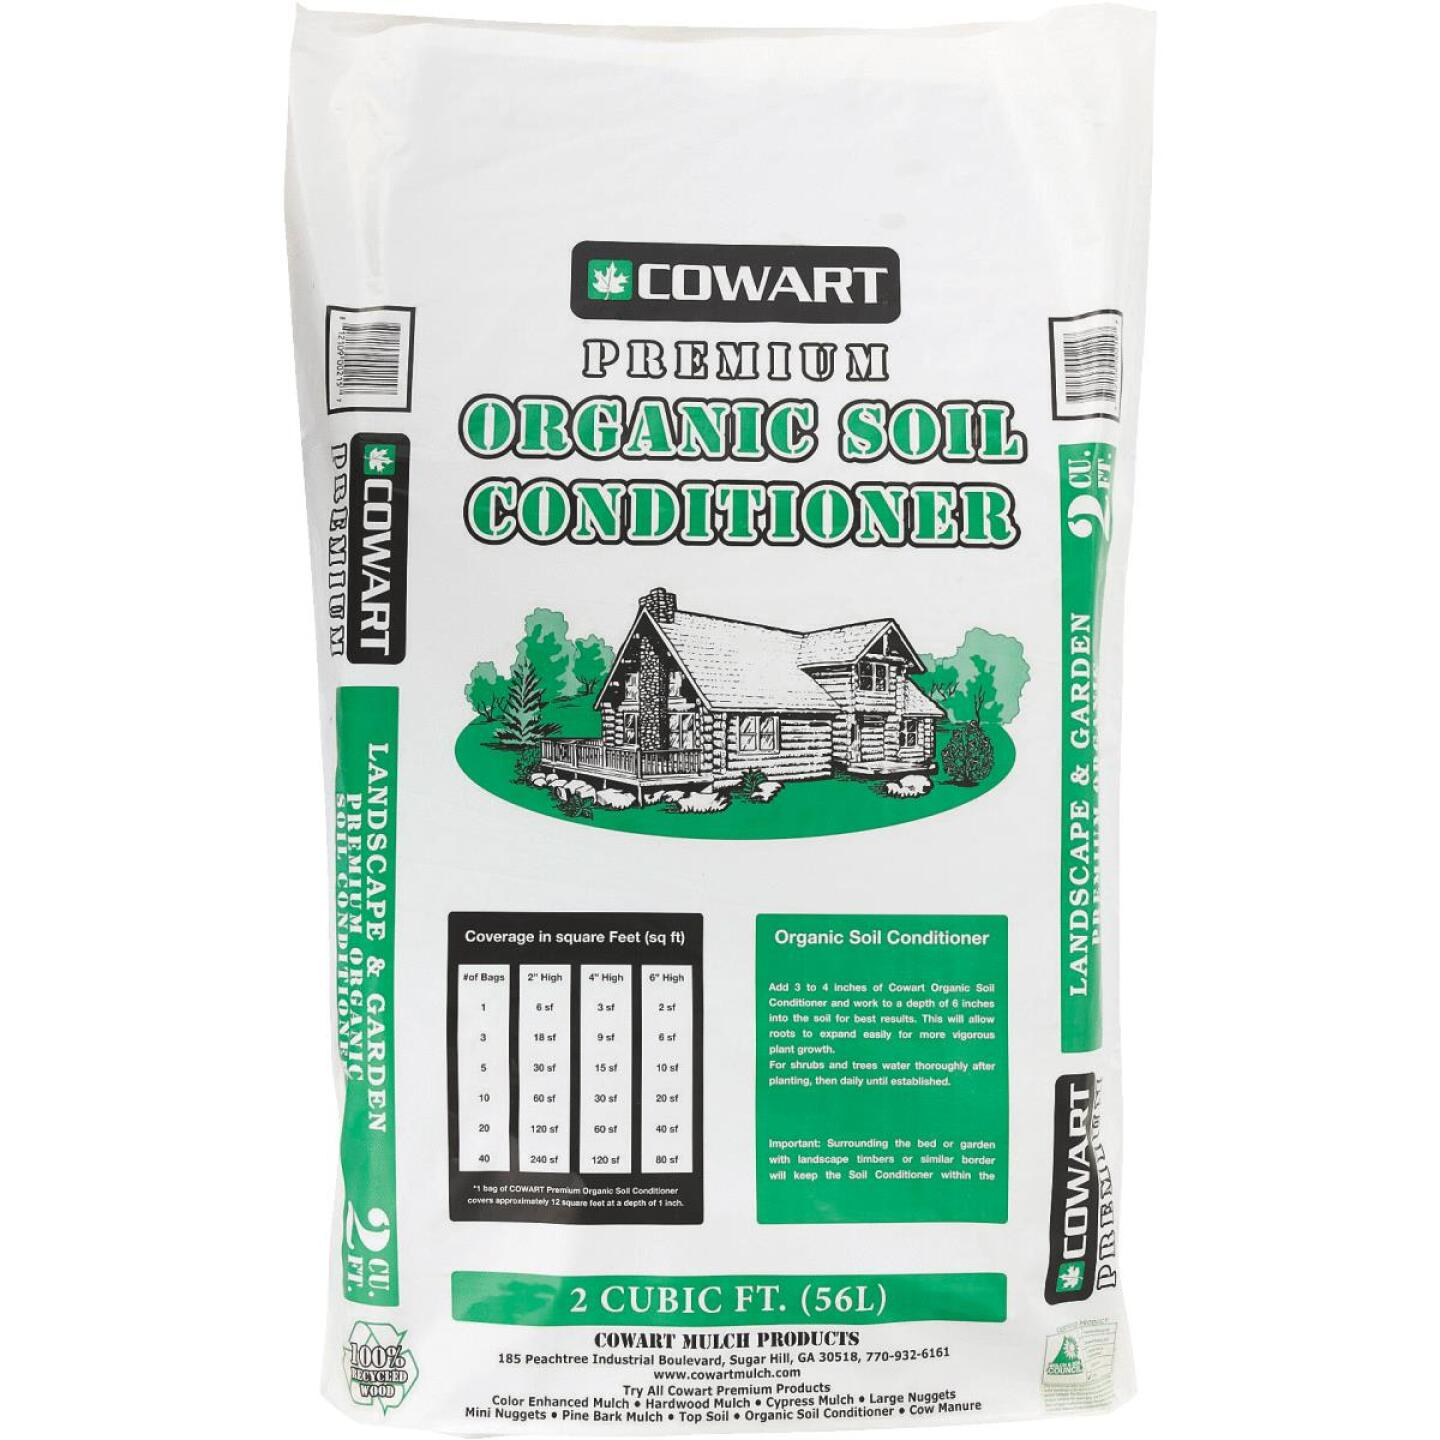 Cowart Sugar Hill 50 Lb. 2 Cu. Ft. Coverage Organic Soil Conditioner Image 1